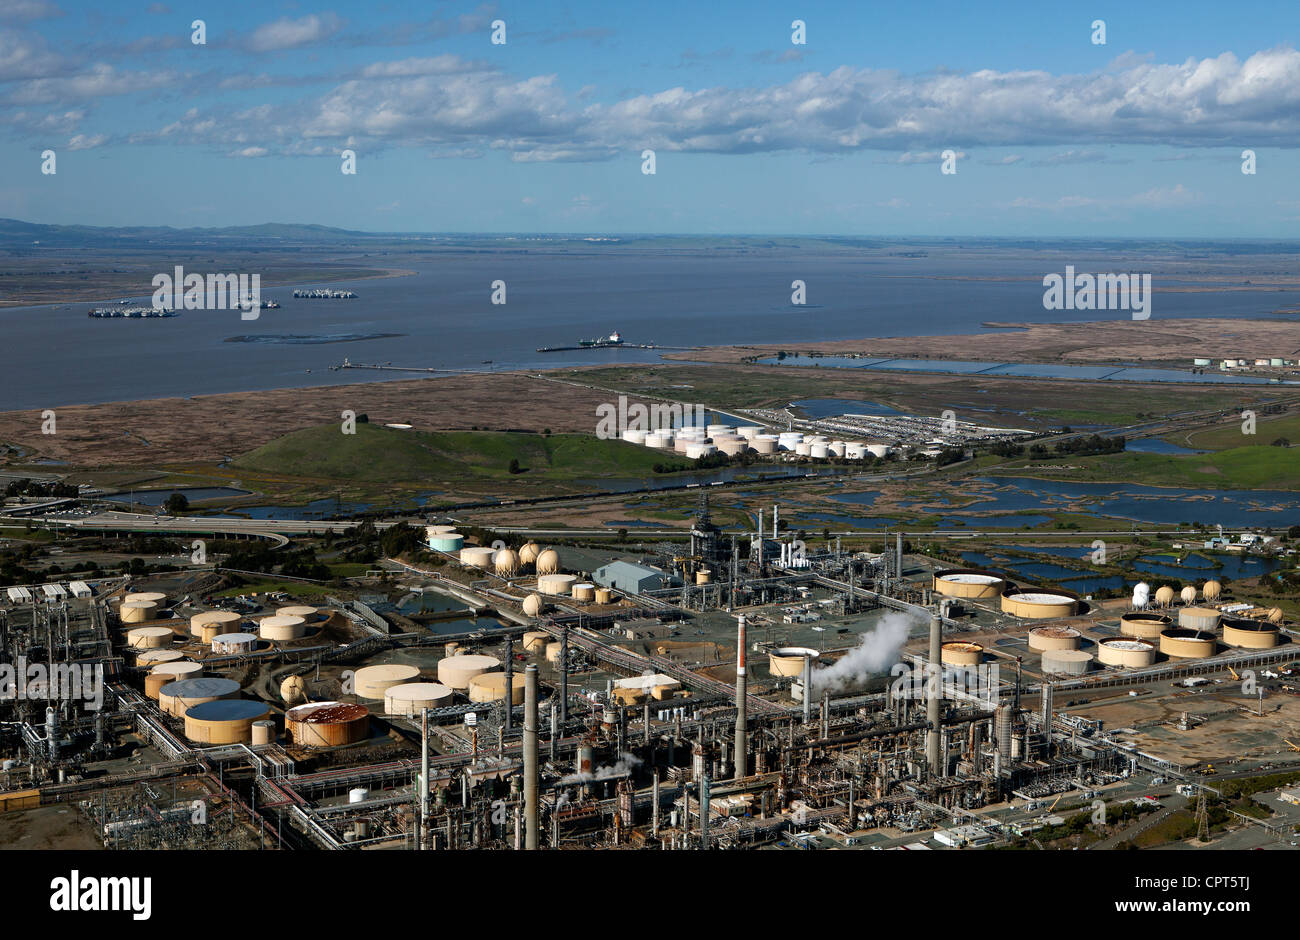 Shell Oil Refinery Stock Photos & Shell Oil Refinery Stock